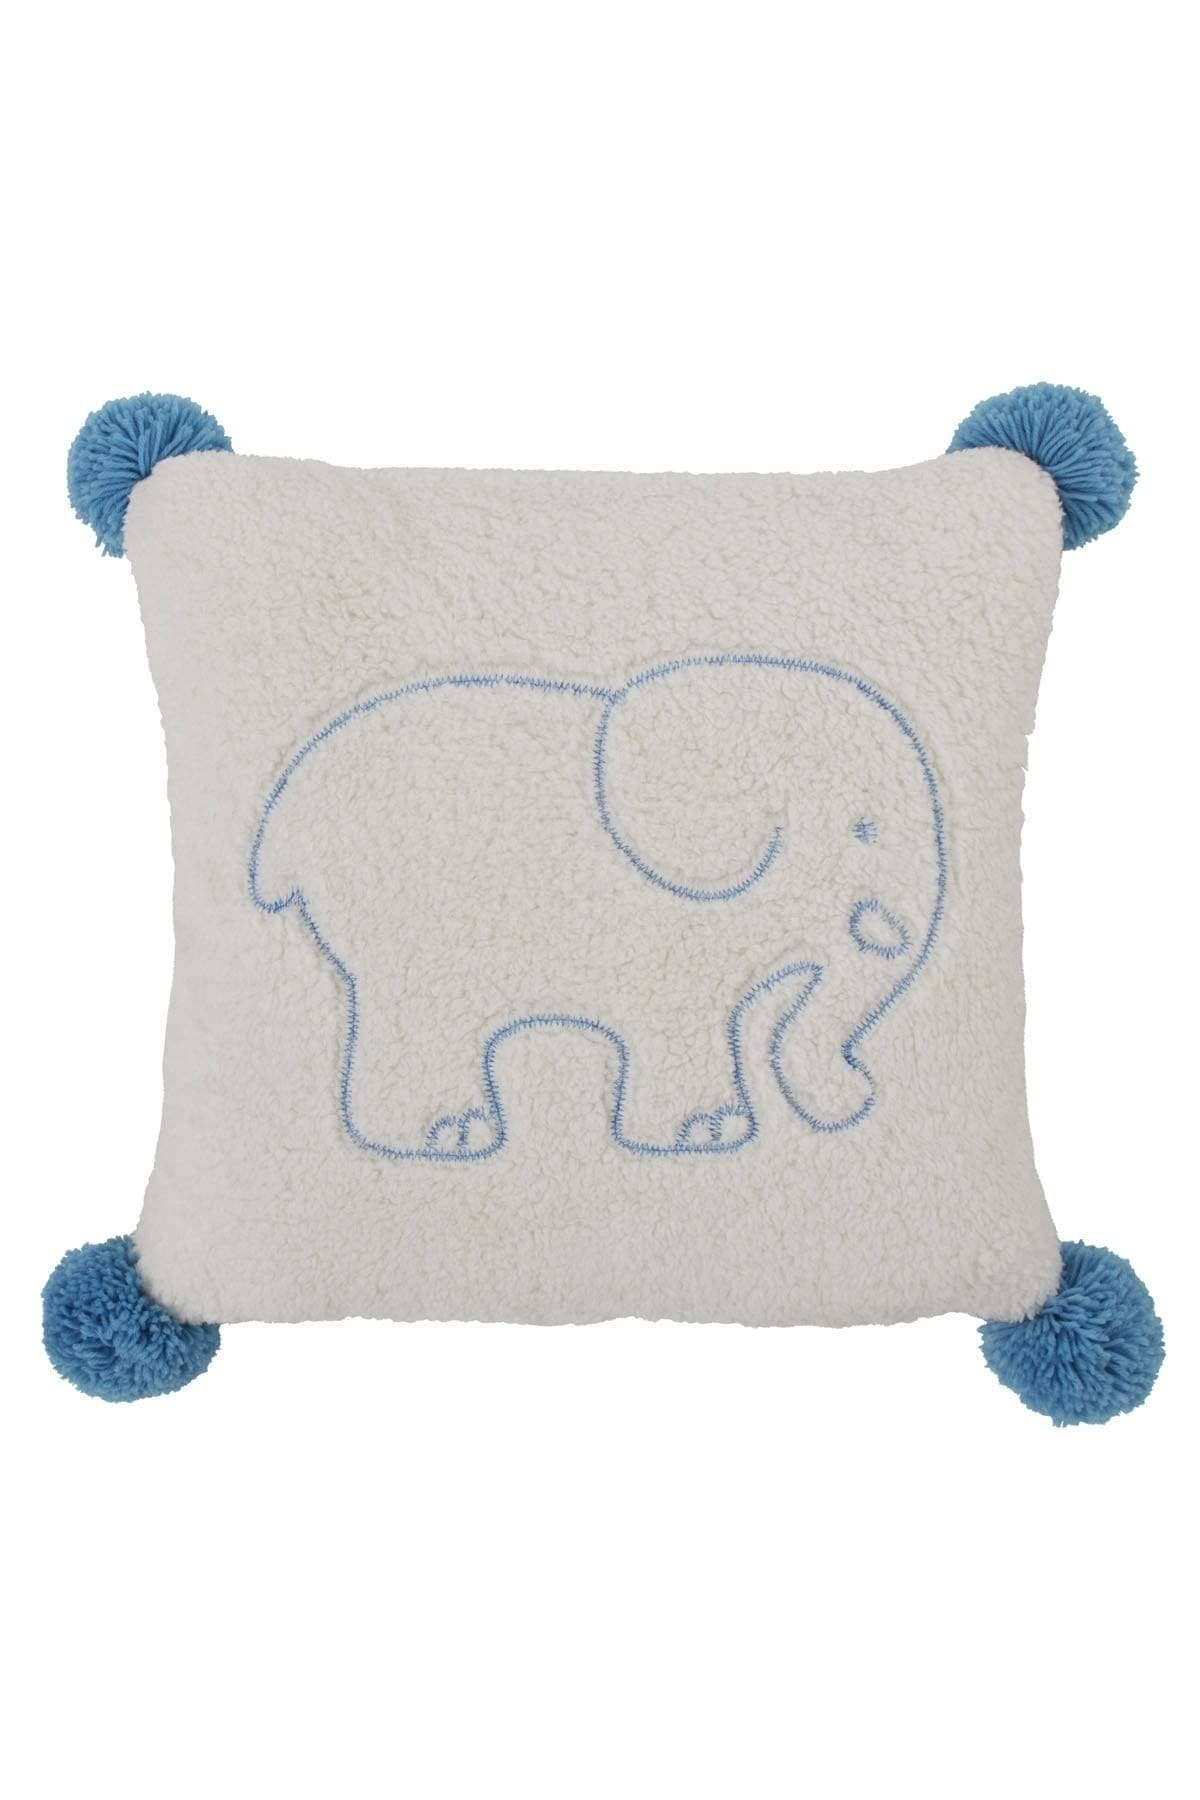 Blue Ella Sherpa Square Pillow - Ivory Ella - Home